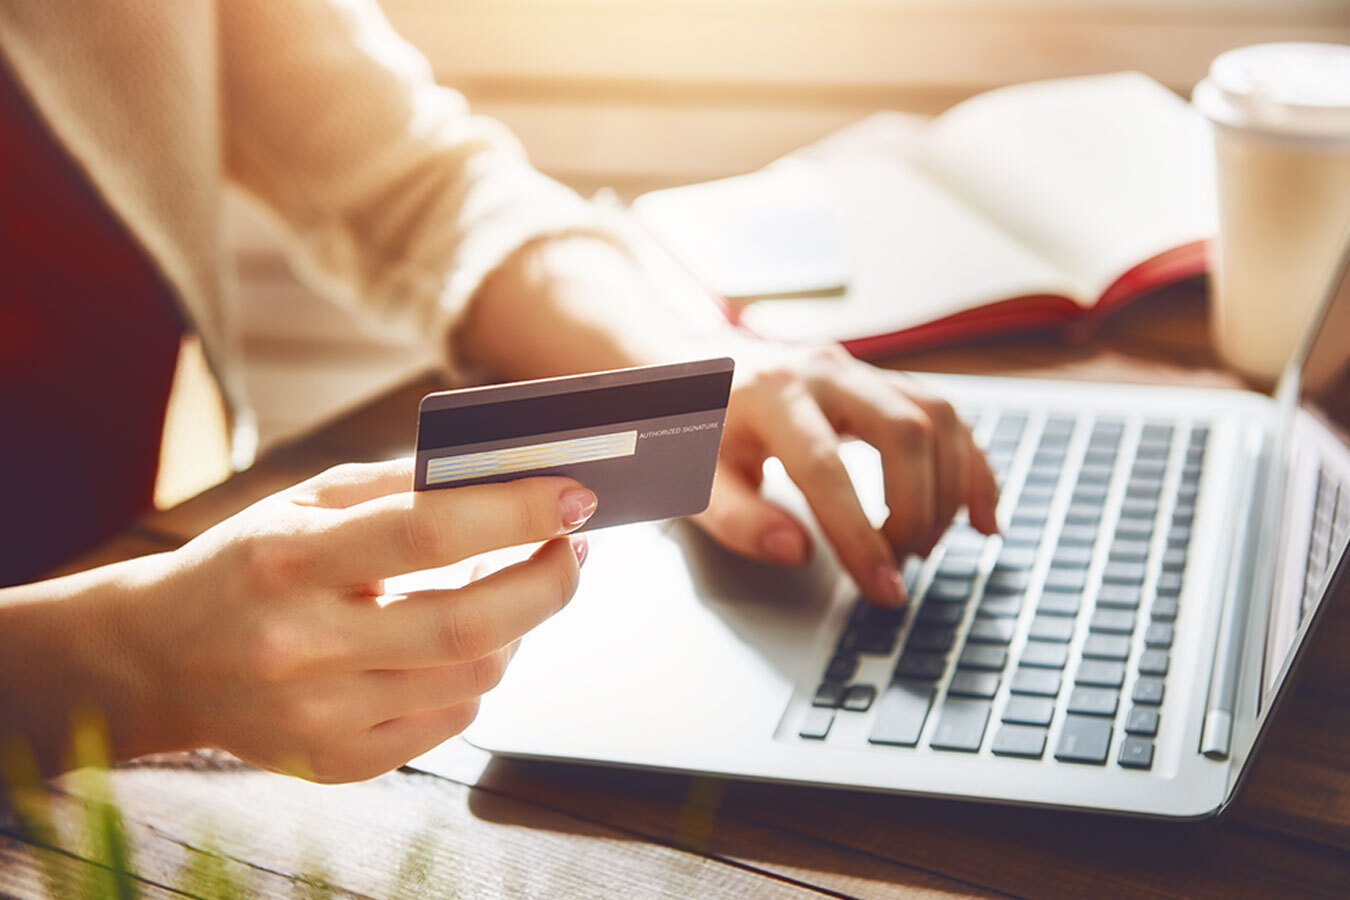 A customer uses their credit card to make a purchase online.